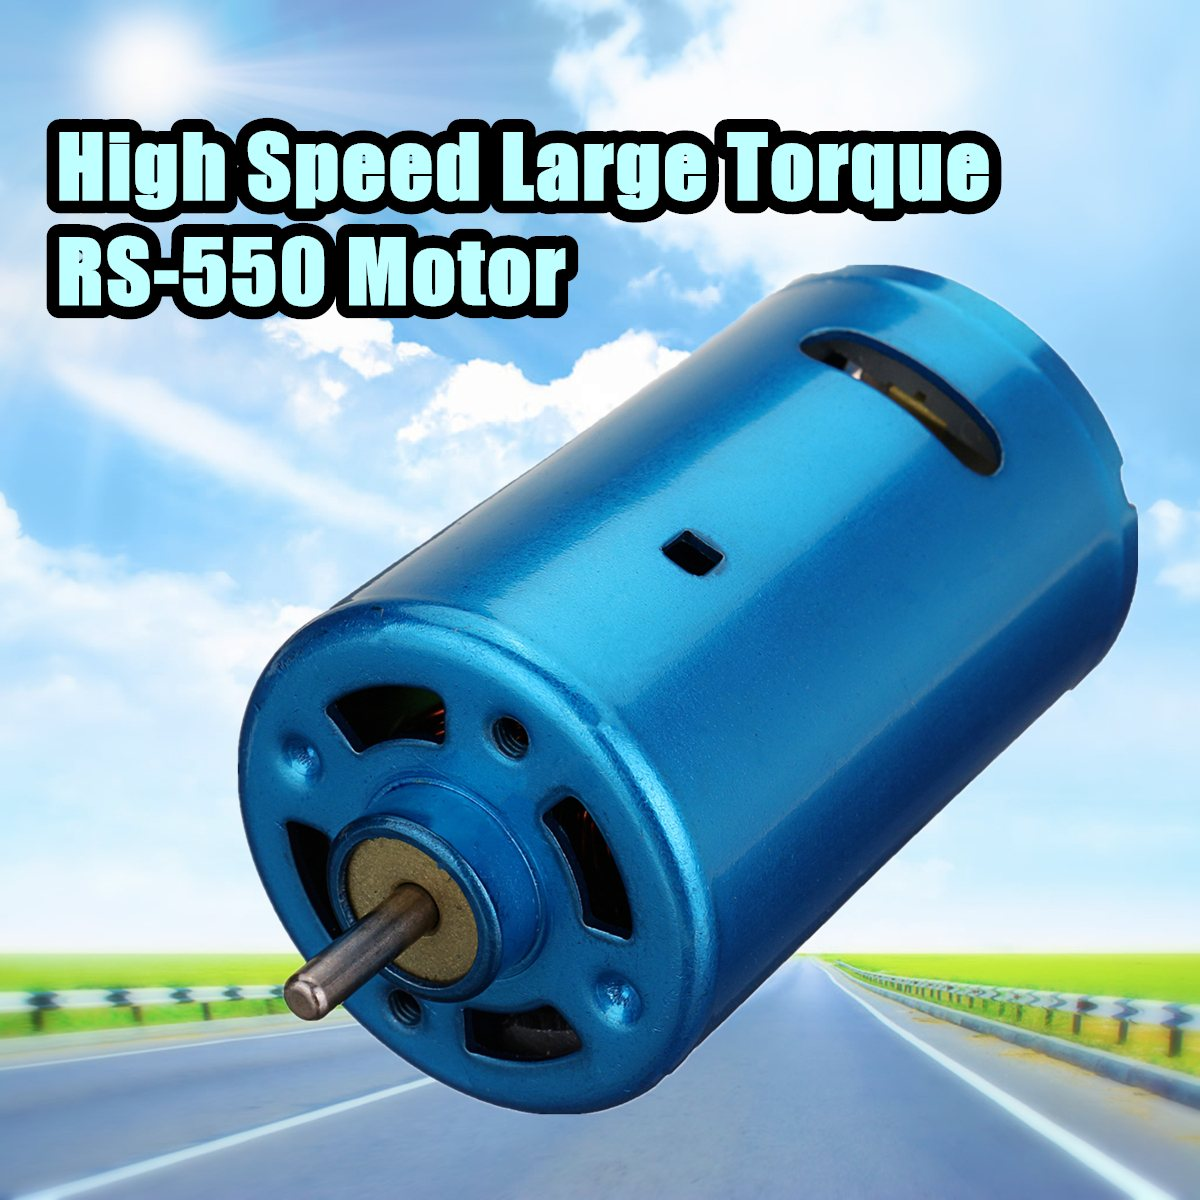 1pc Blue RS-550 DC Motor 12V 24V 10000-30000RPM High Speed Large Torque RC Car Boat Model free shipping 775 motor with bearing d shaped shaft 12v 24v high speed motor spare parts for diy rc car boat model